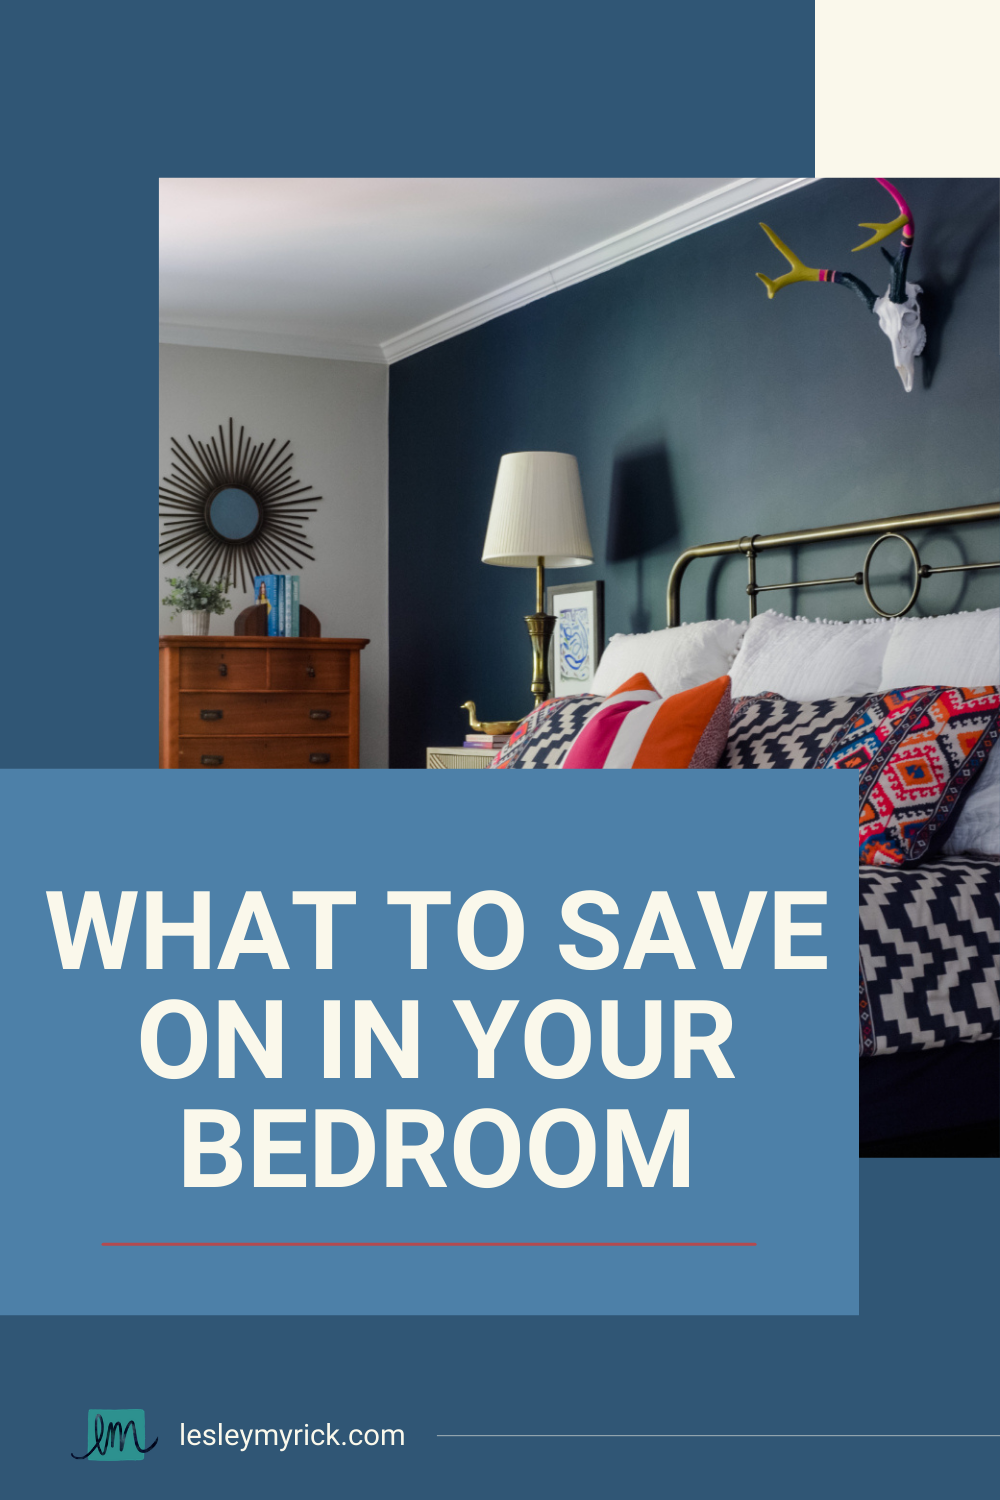 Here's what to splurge on in your bedroom; here's what to save on in your bedroom; and here's what could go either way.